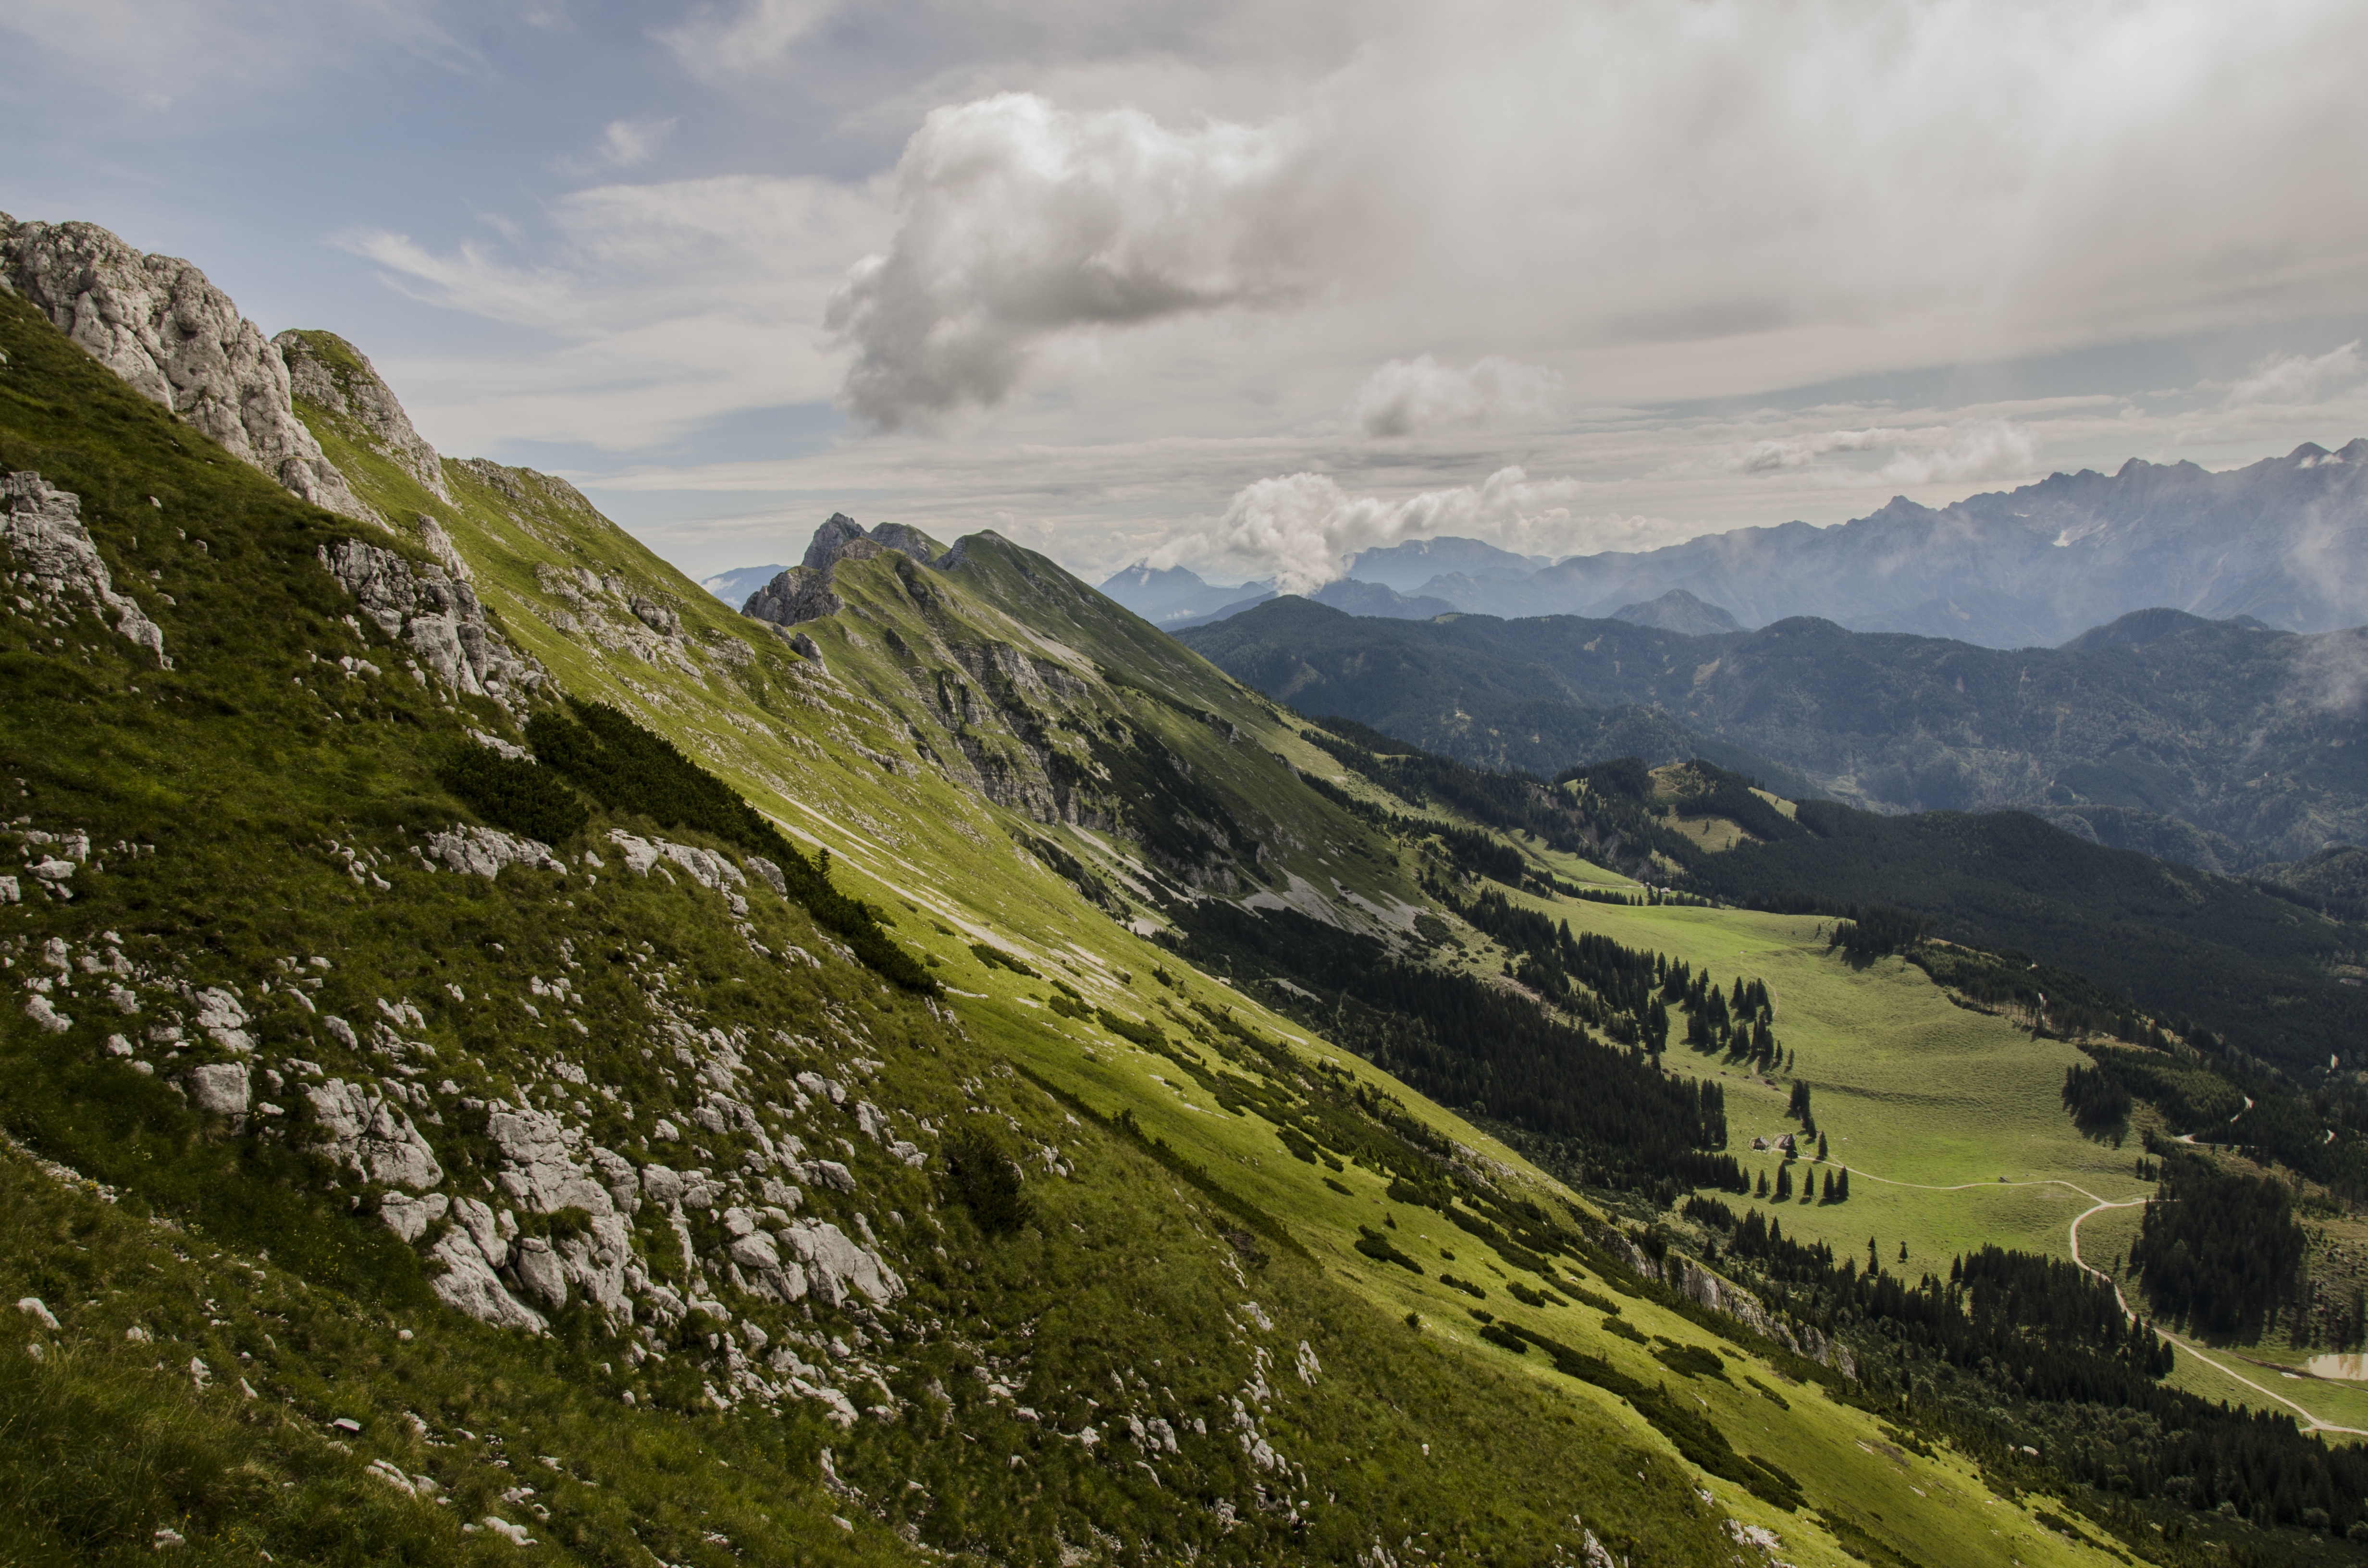 Mountain Landscape, Cloud, Cloudy, Green, Height, HQ Photo